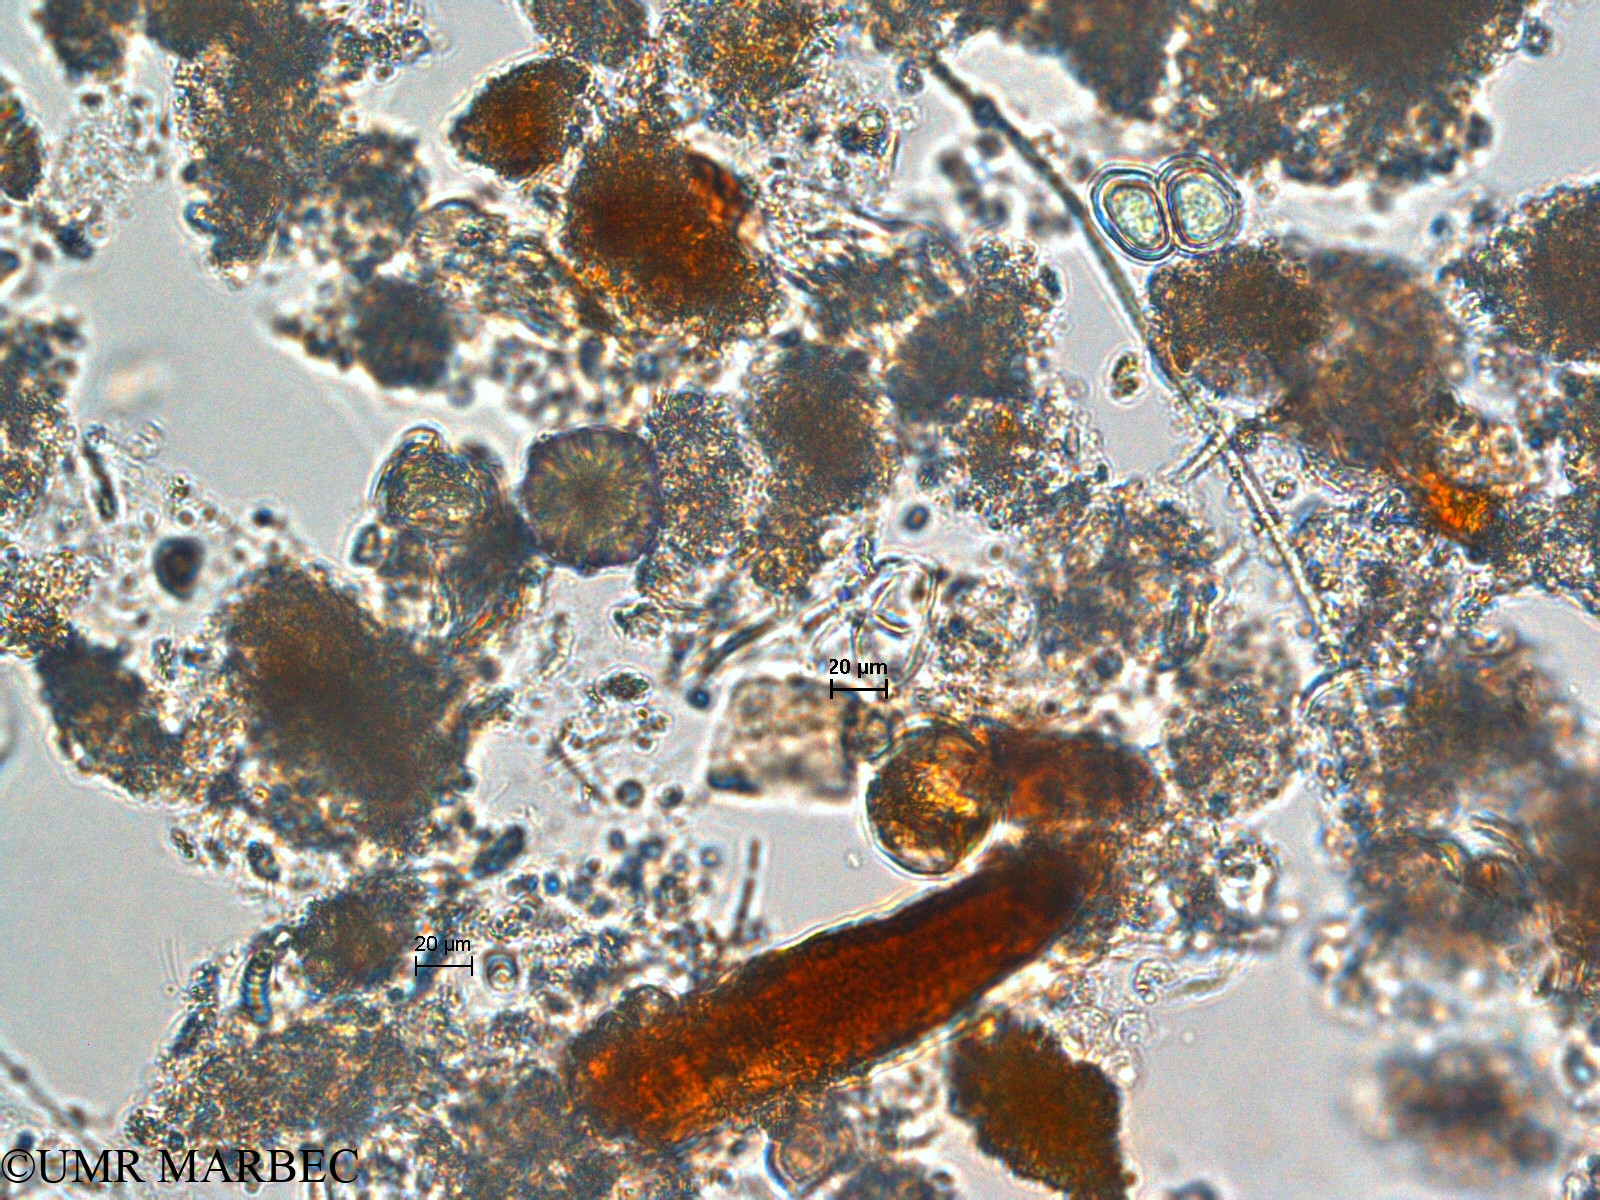 phyto/Scattered_Islands/europa/COMMA April 2011/Chroococcus turgidus (ancien C. sp8 -1)(copy).jpg